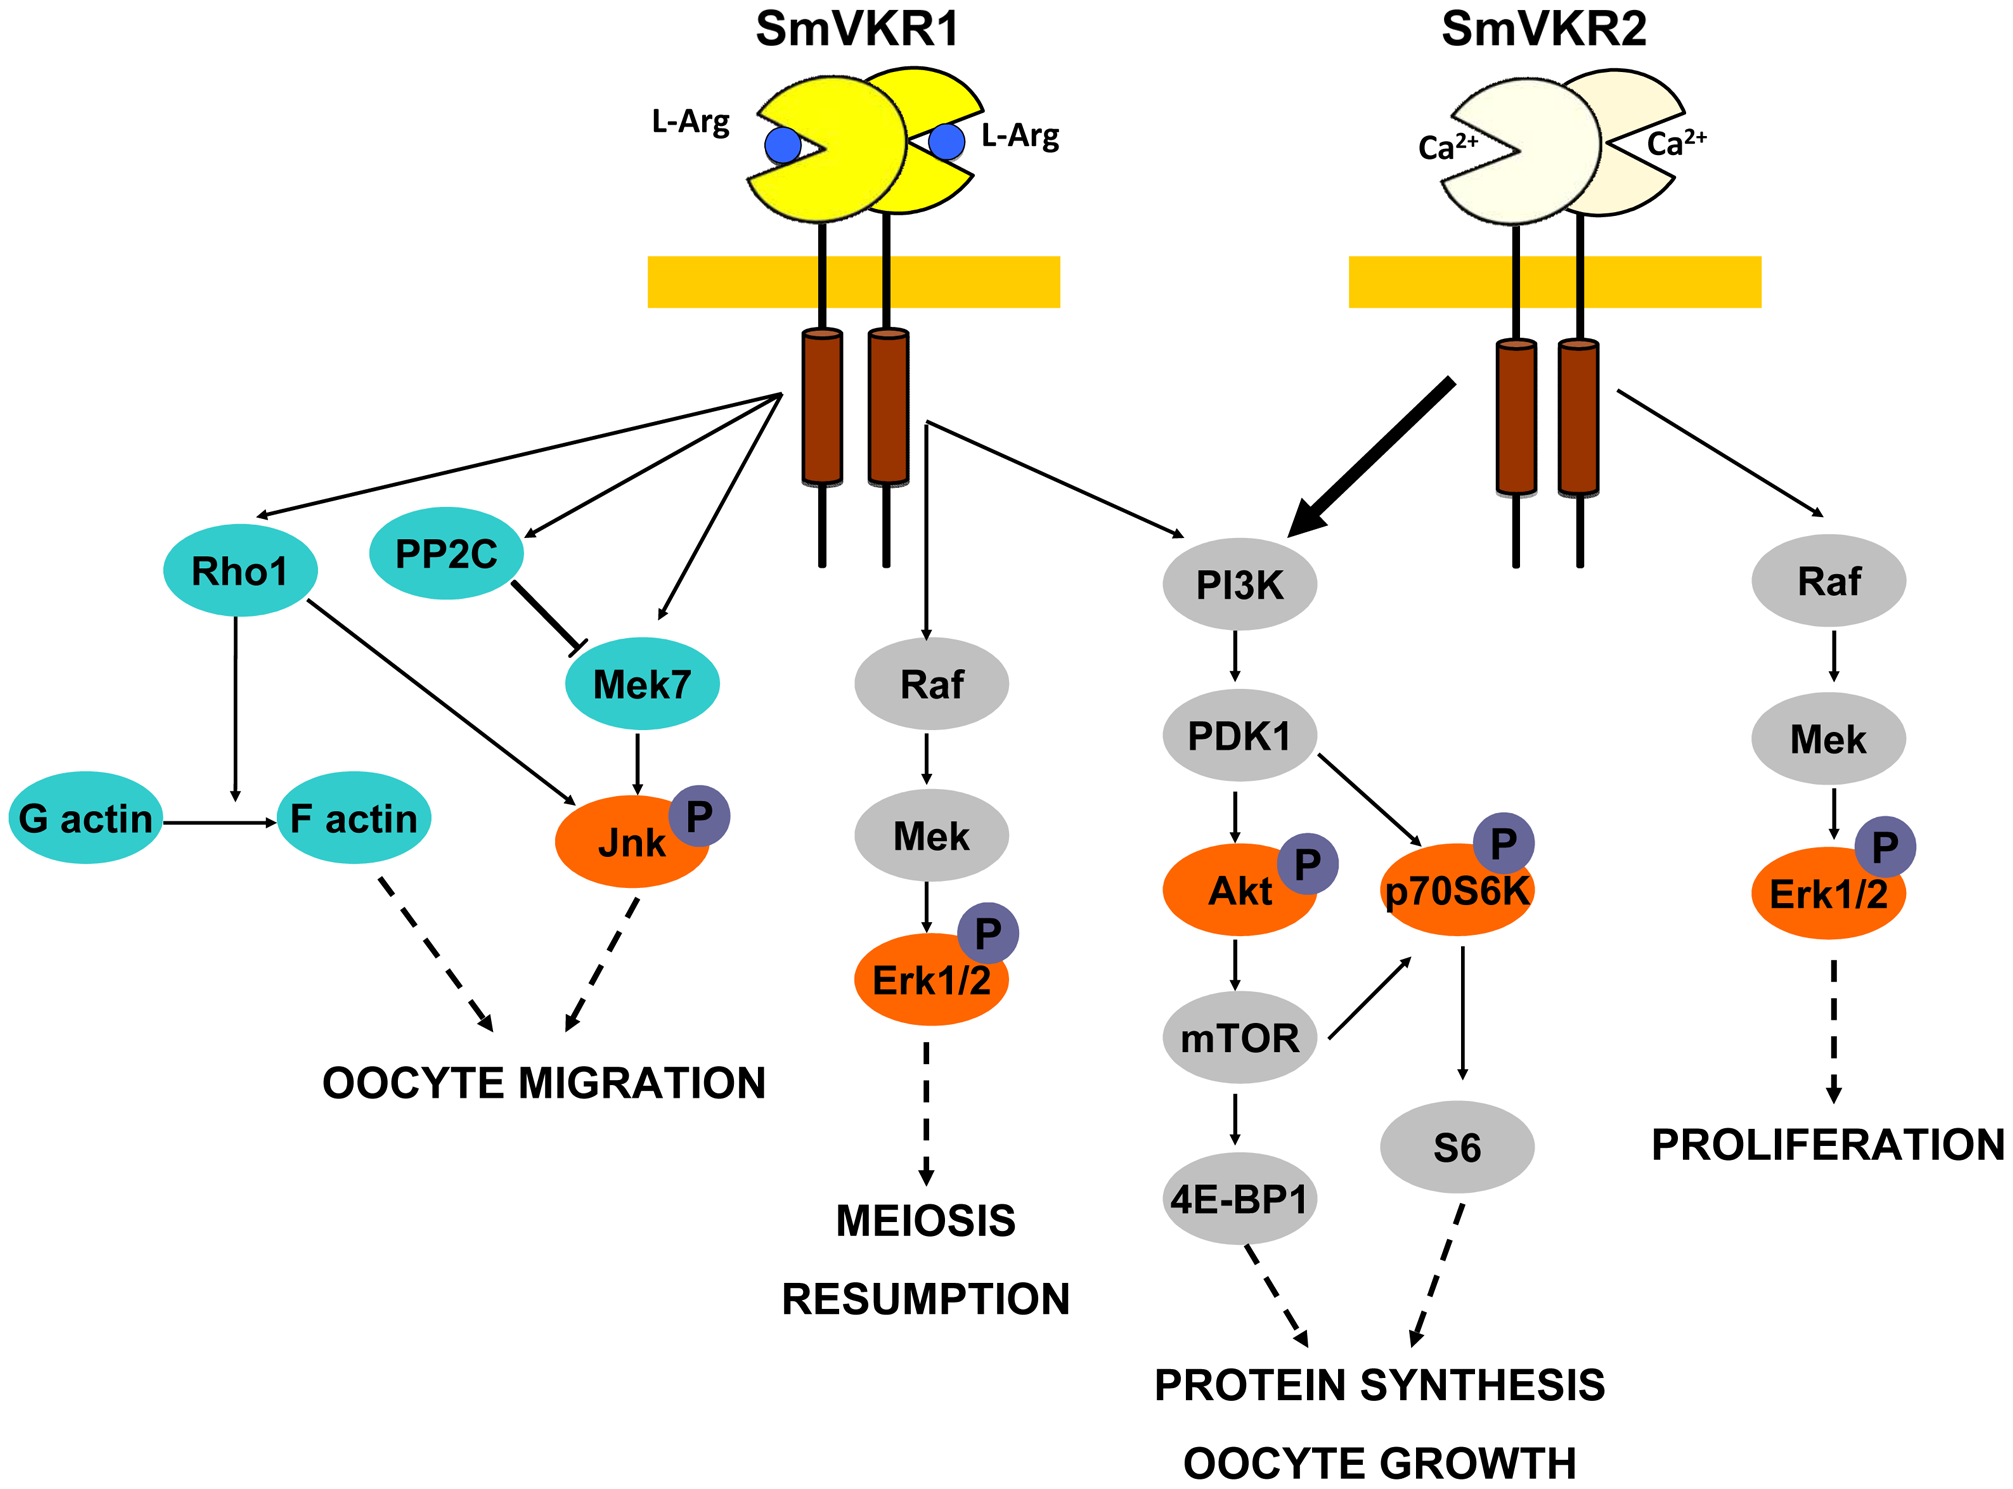 Summary of the major signalling pathways triggered by the activation of SmVKR and potentially regulating fate and differentiation of oocytes in female schistosome organs.